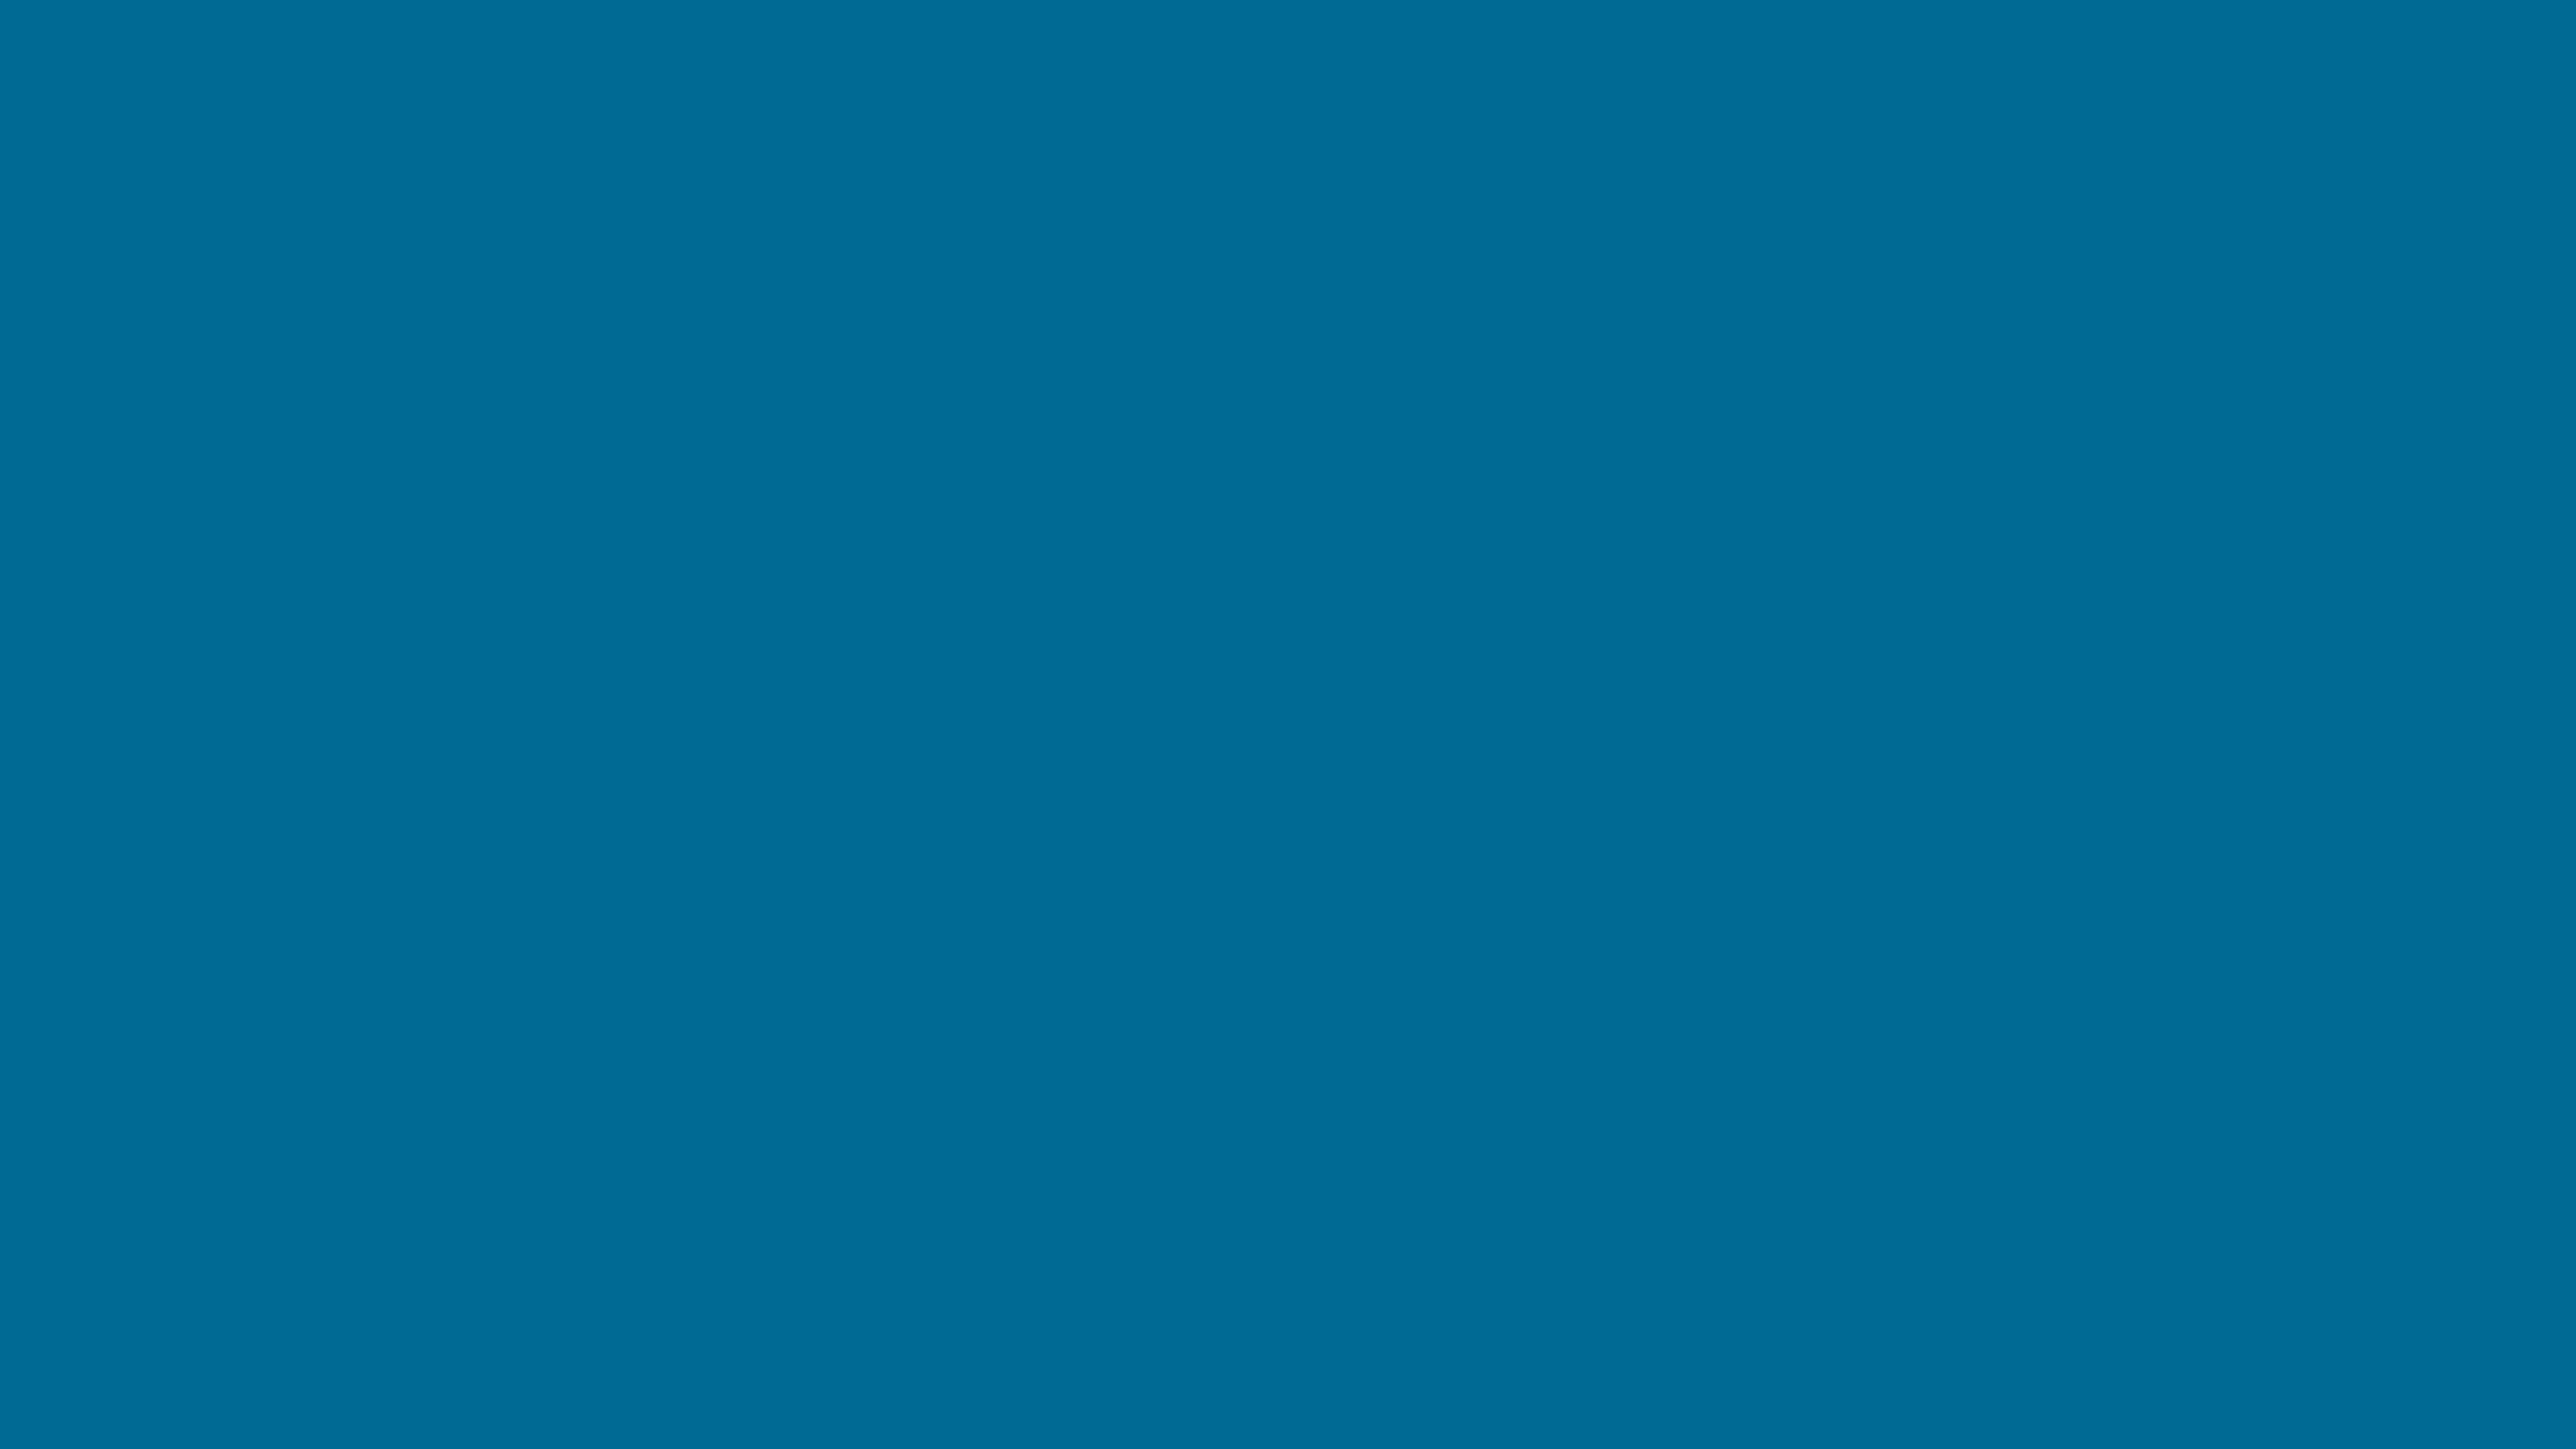 3840x2160 Sea Blue Solid Color Background